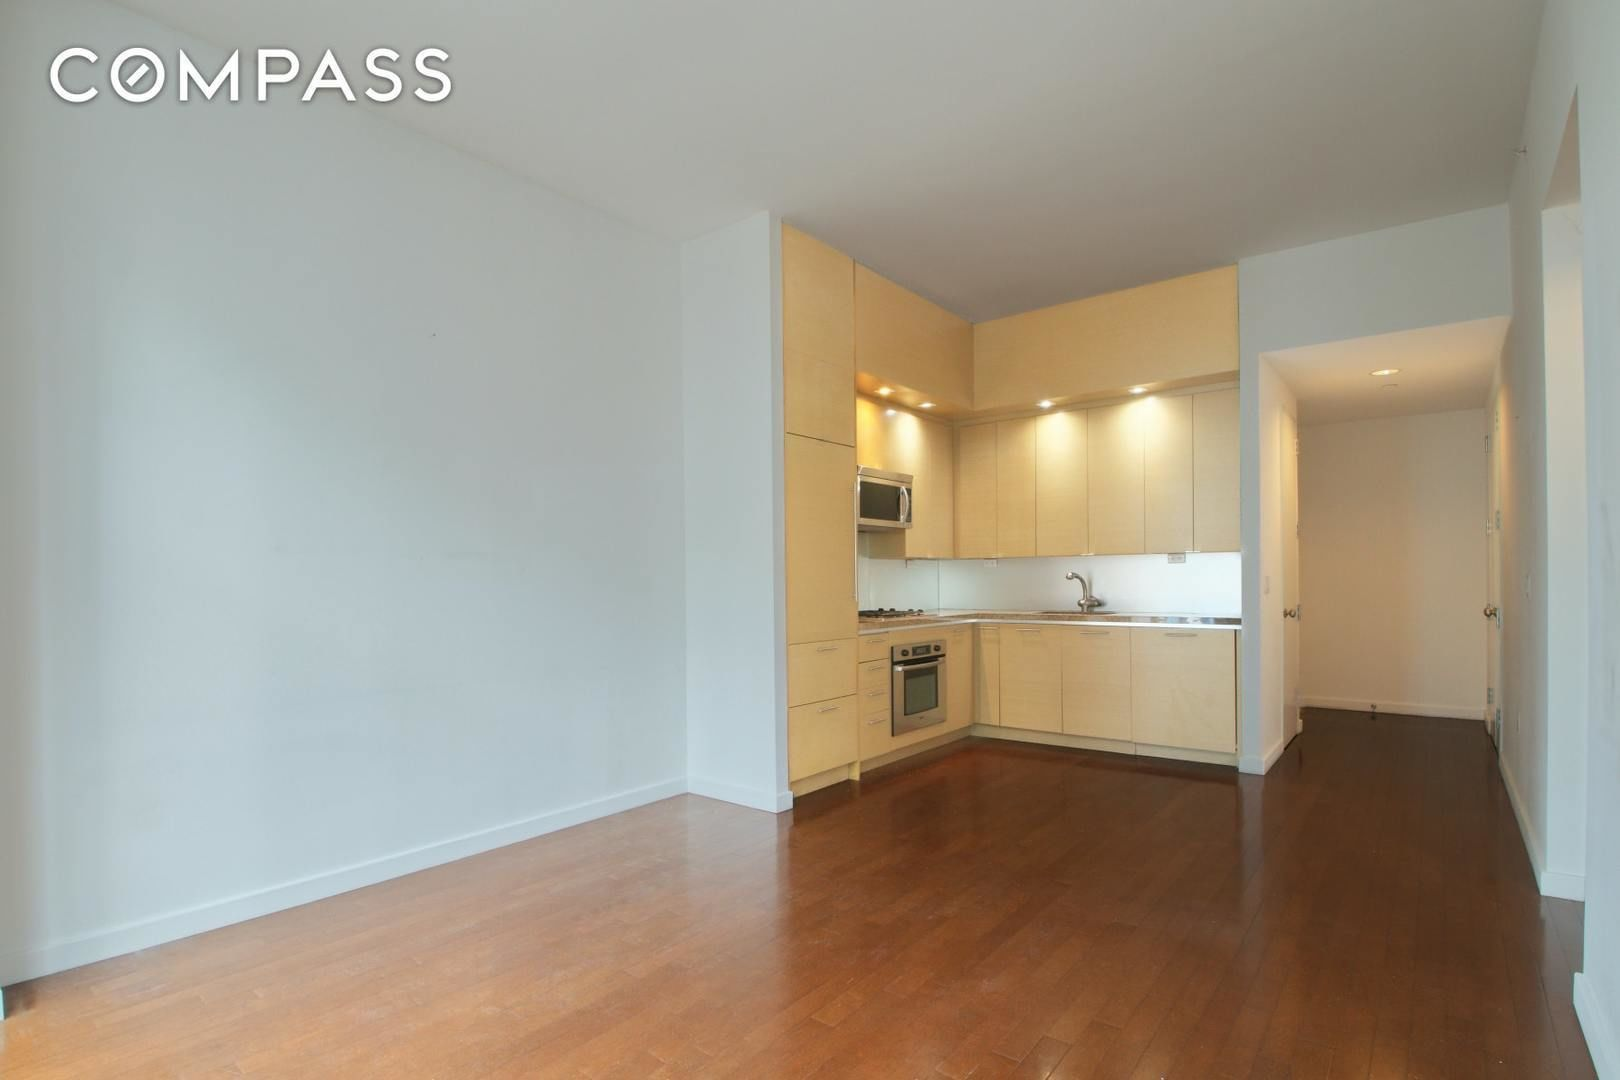 Apartment for sale at 1600 Broadway, Apt 21-E